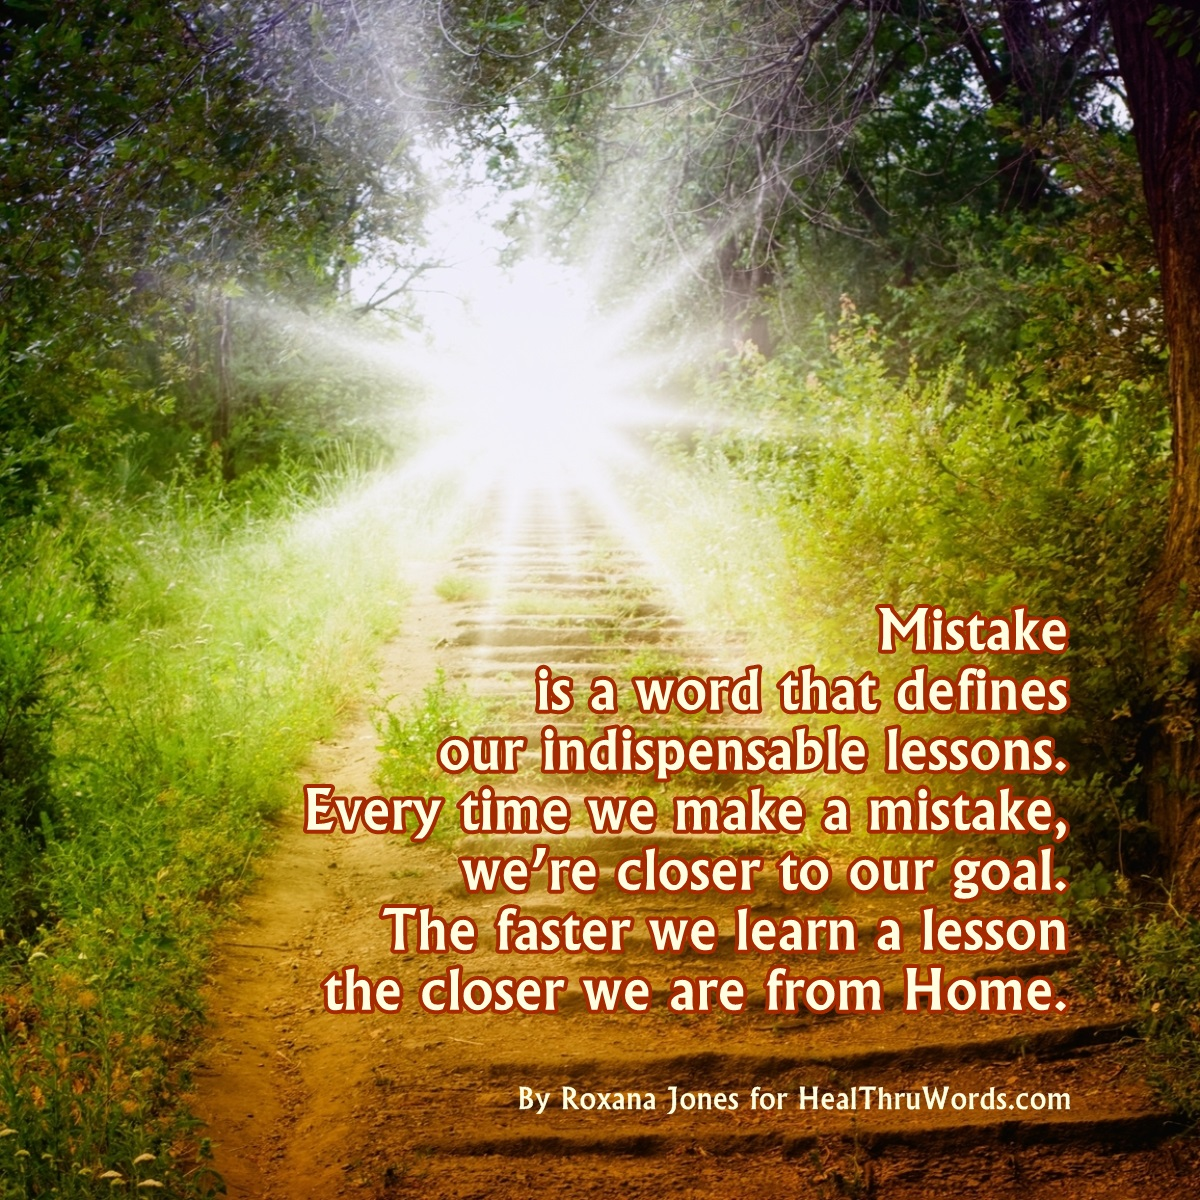 Inspirational Quotes On Pinterest: Inspirational Quotes About Mistakes. QuotesGram